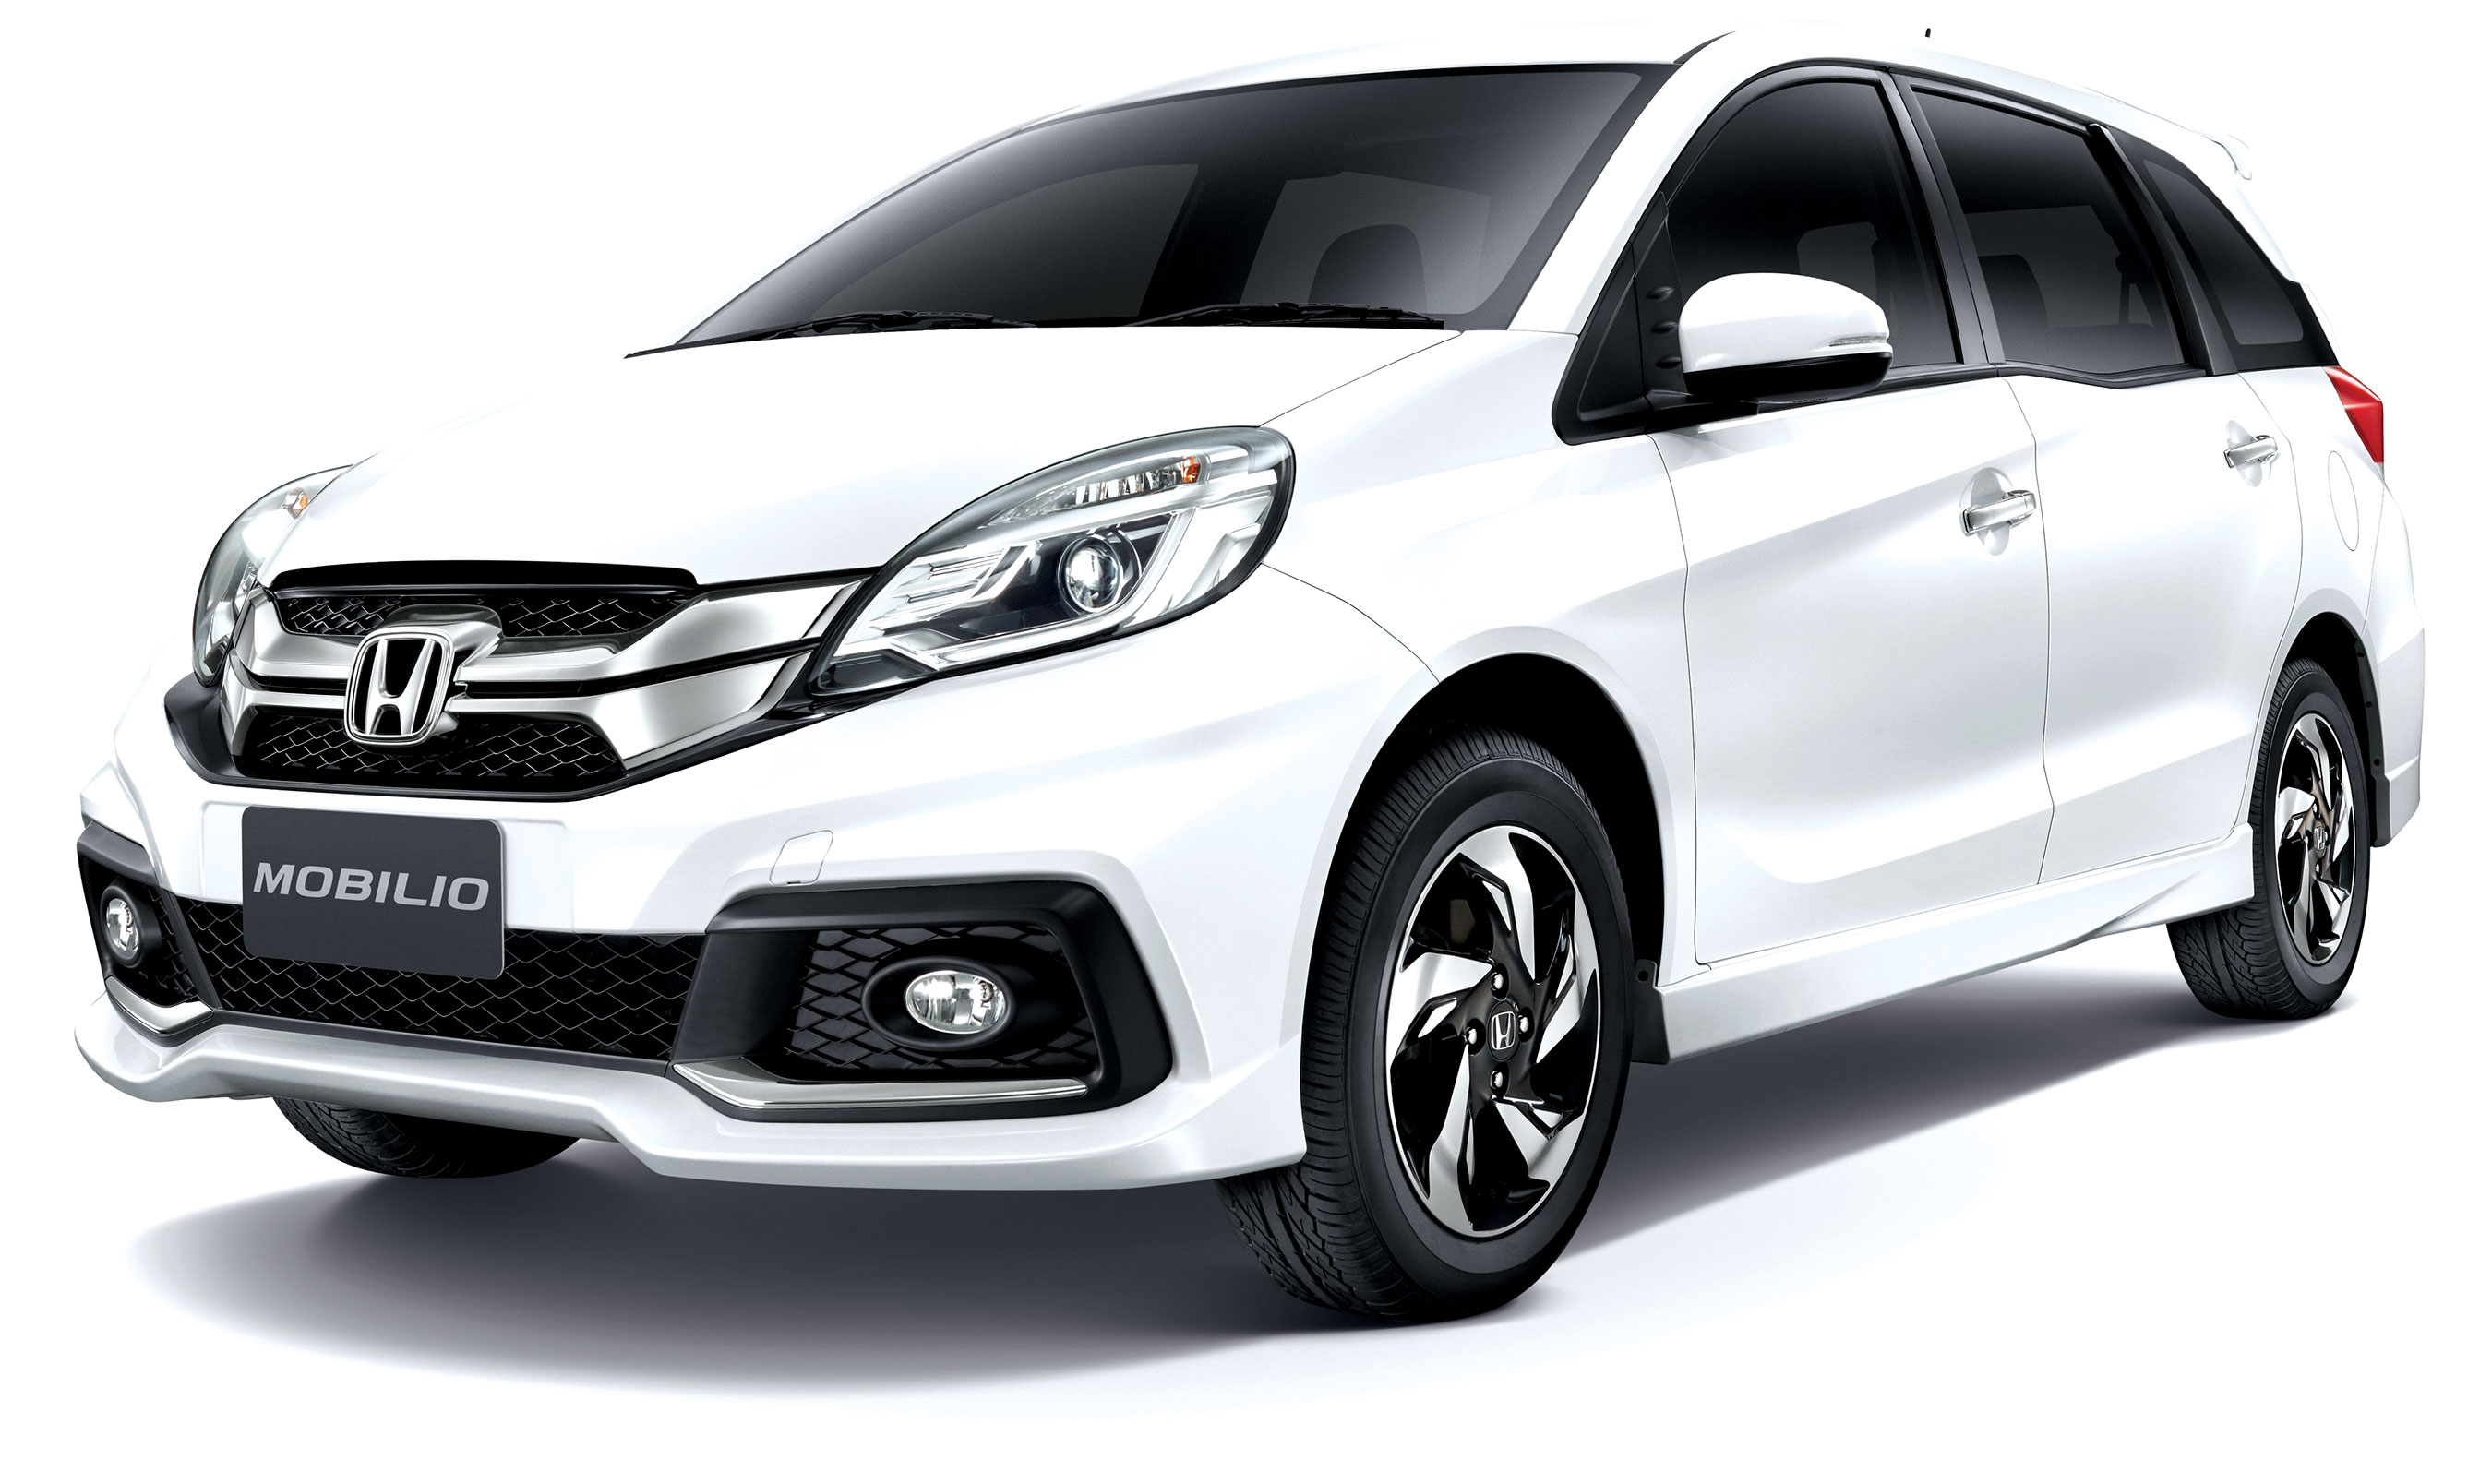 Top 7 Muvs Under Inr 10 Lakh In India News Cars News India Com